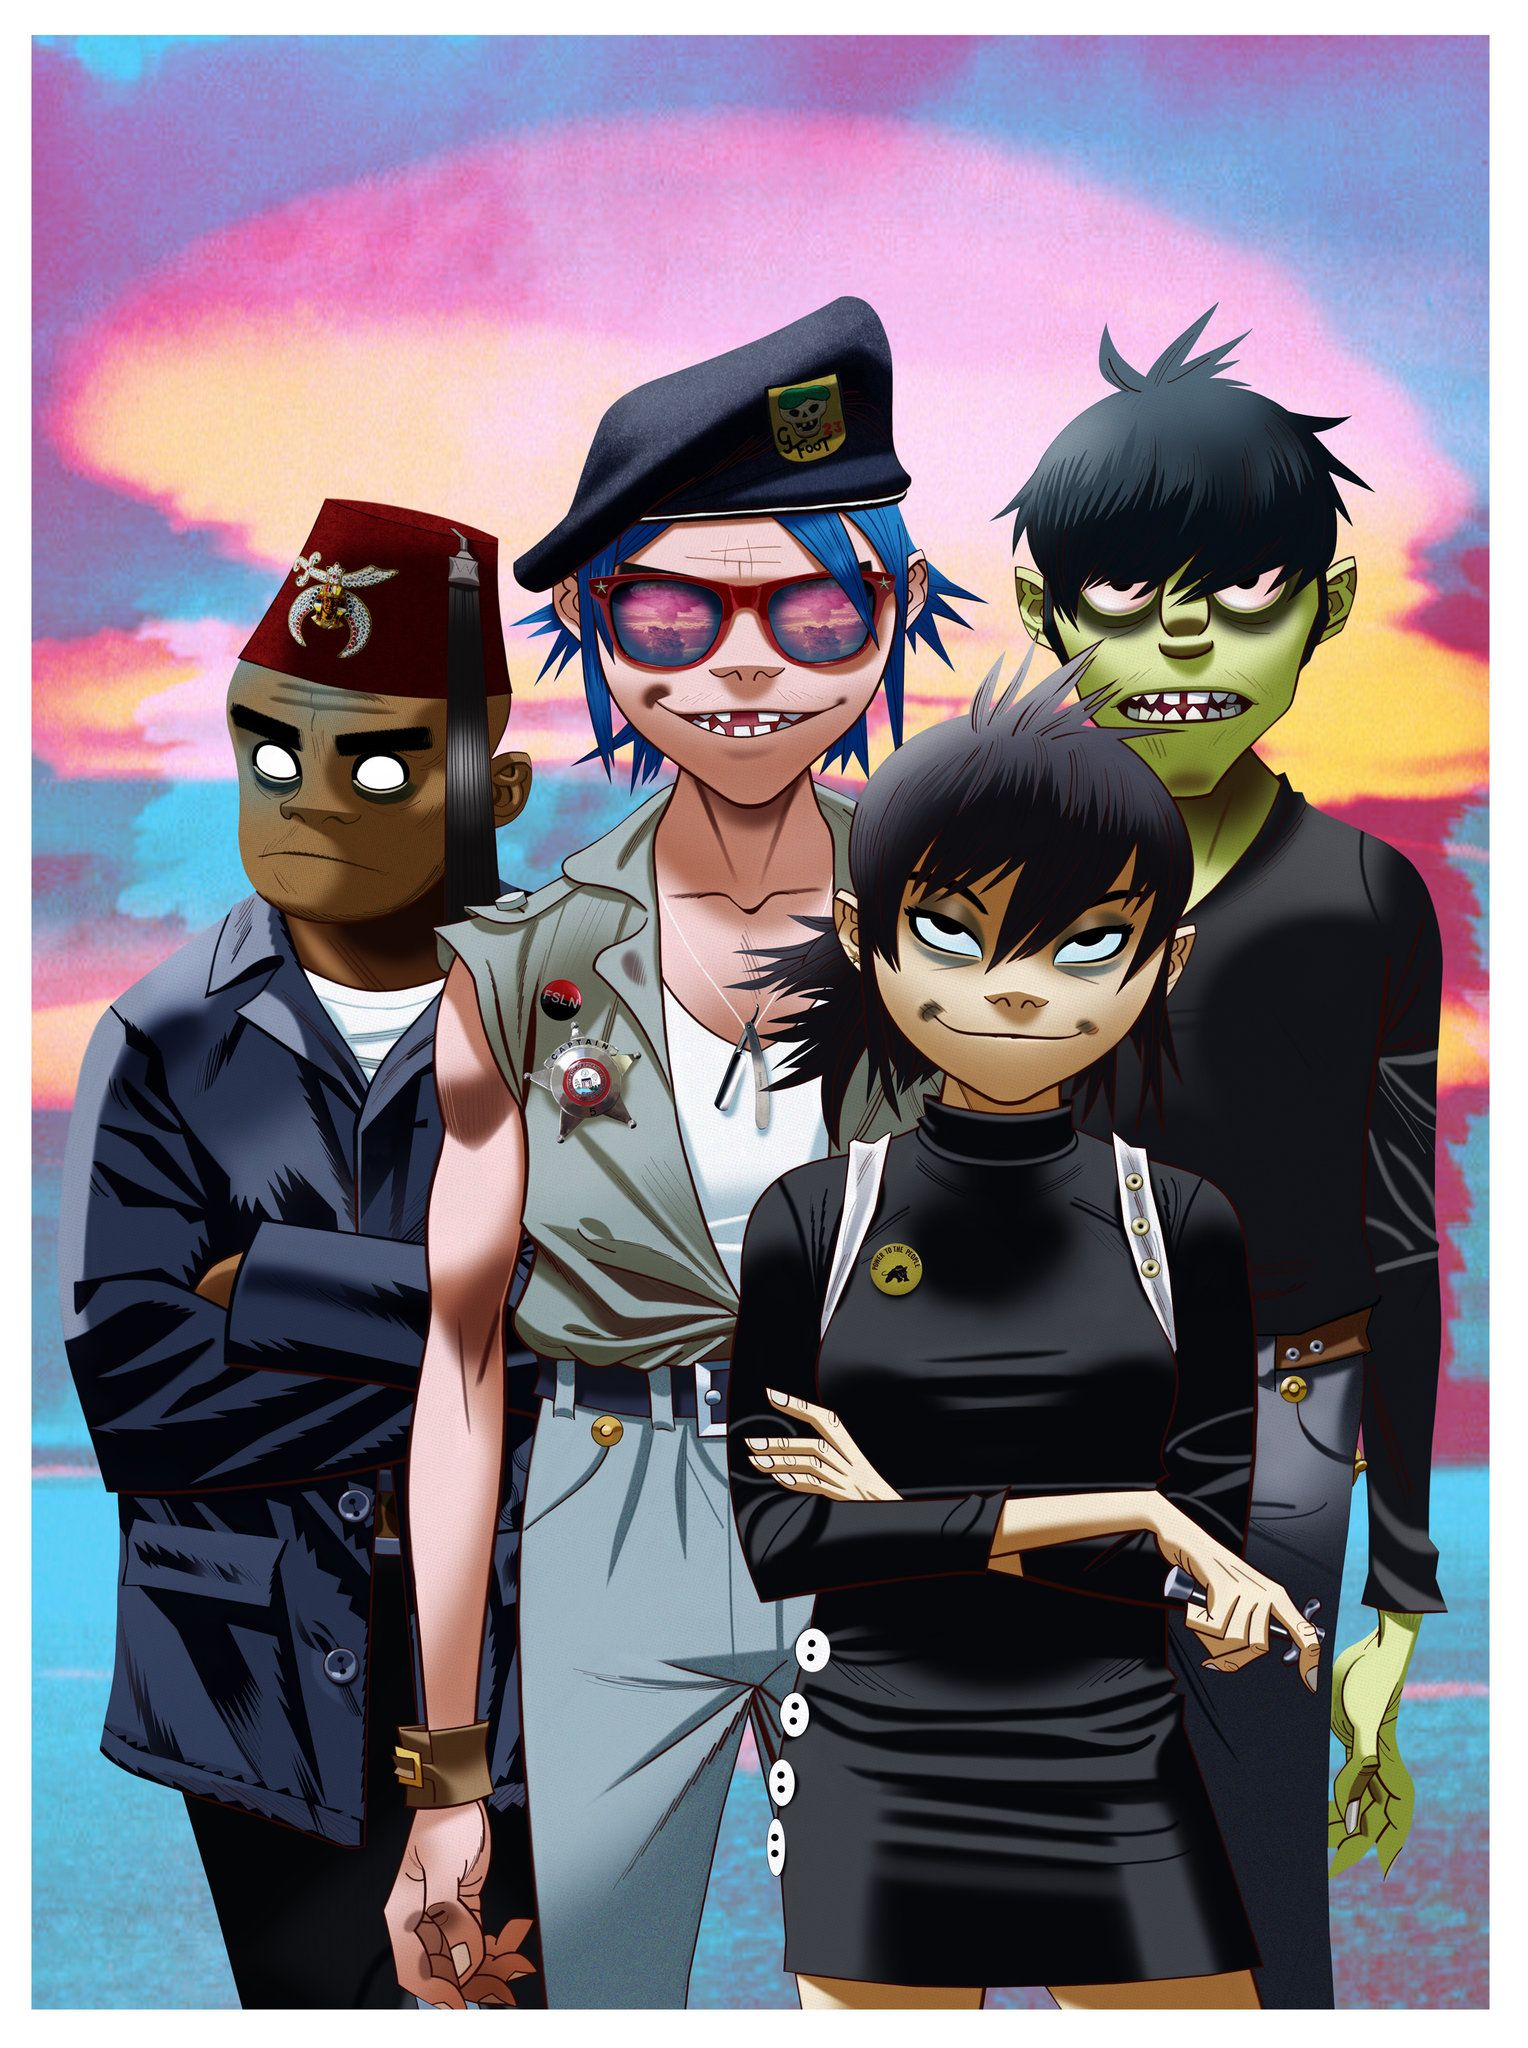 gorillaz wallpaper SpecificPleasemakethis1920x1080and